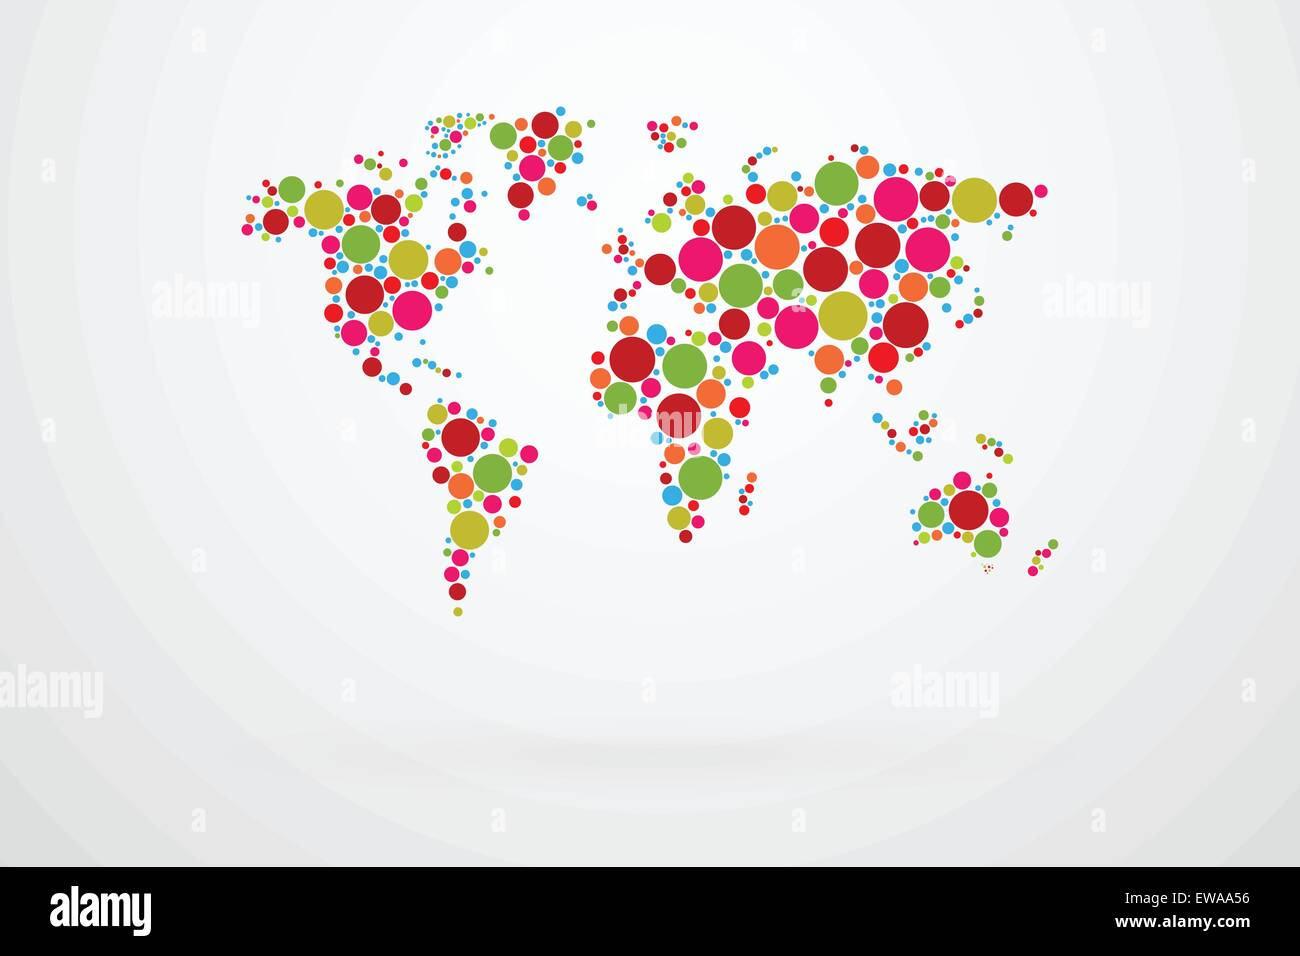 Colored dots world map vector stock vector art illustration colored dots world map vector gumiabroncs Gallery